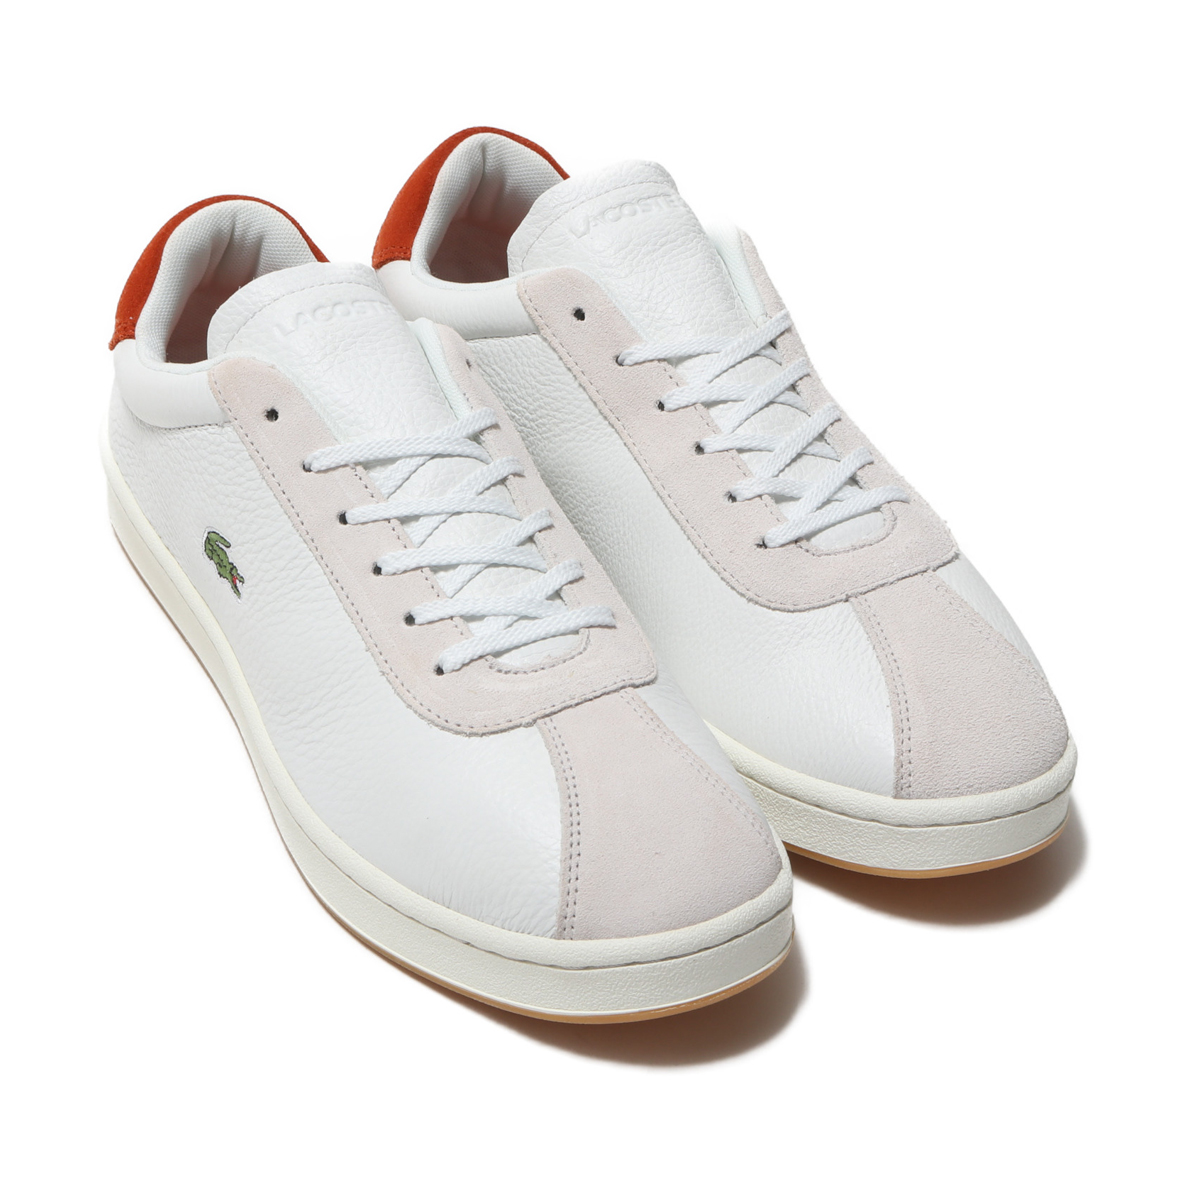 LACOSTE MASTERS 119 3 (ラコステ マスターズ 119 2)OFF WHT/RED【メンズ スニーカー】19SP-I